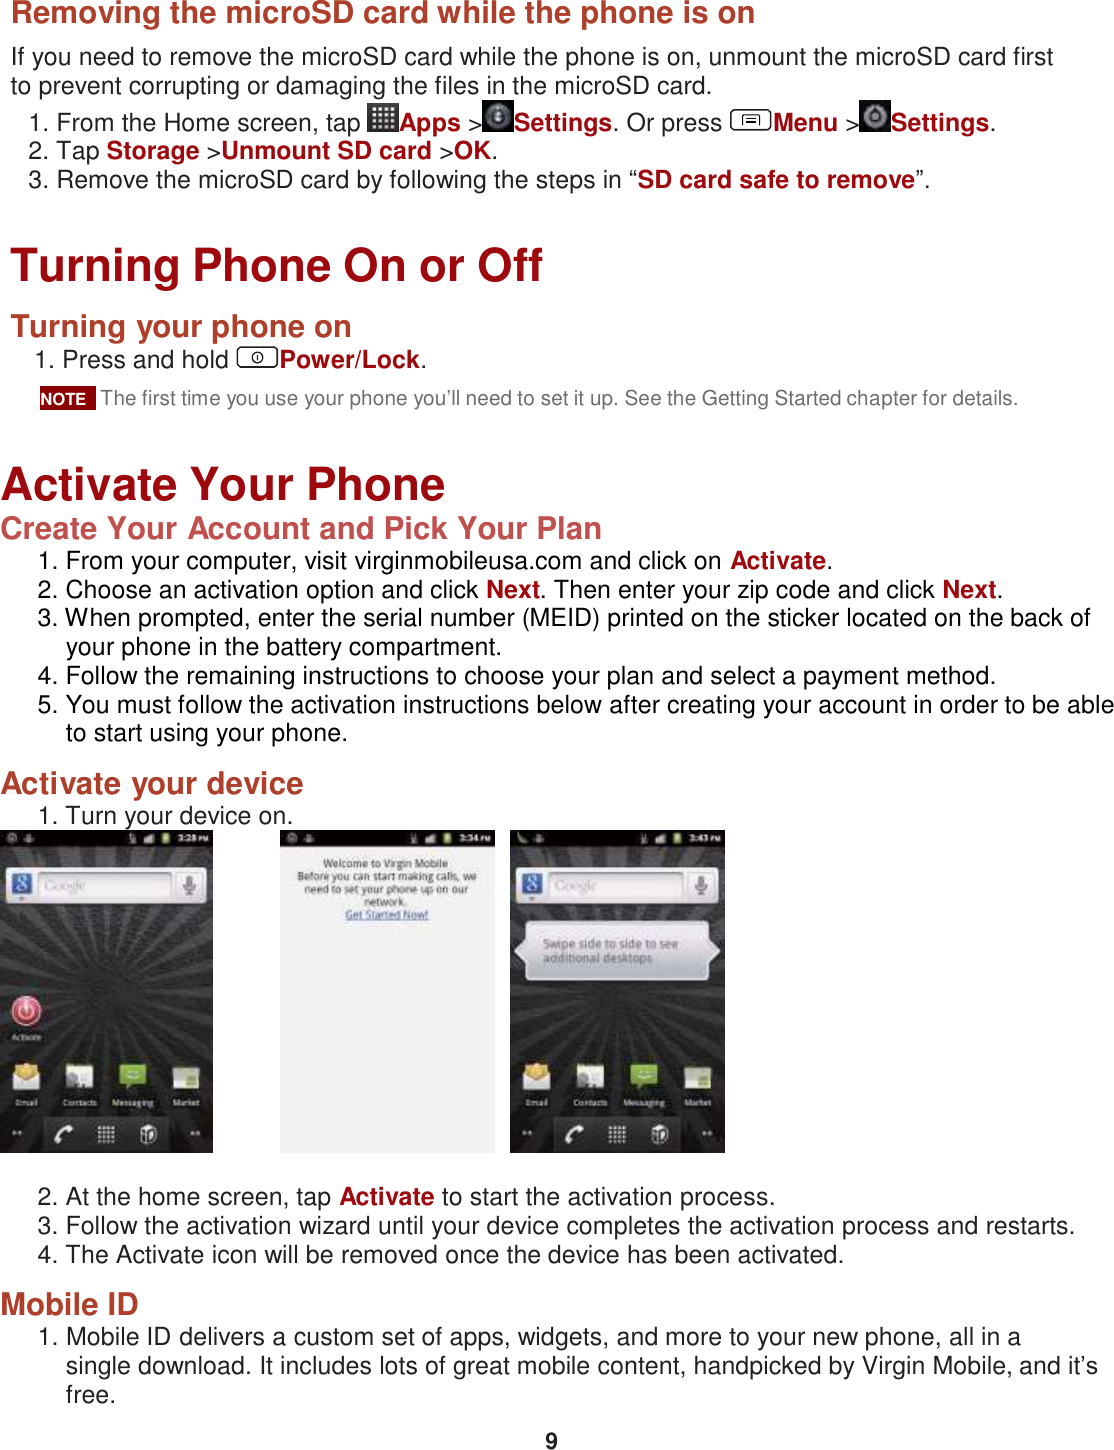 Pcd Chaser Virgin Mobile Users Manual